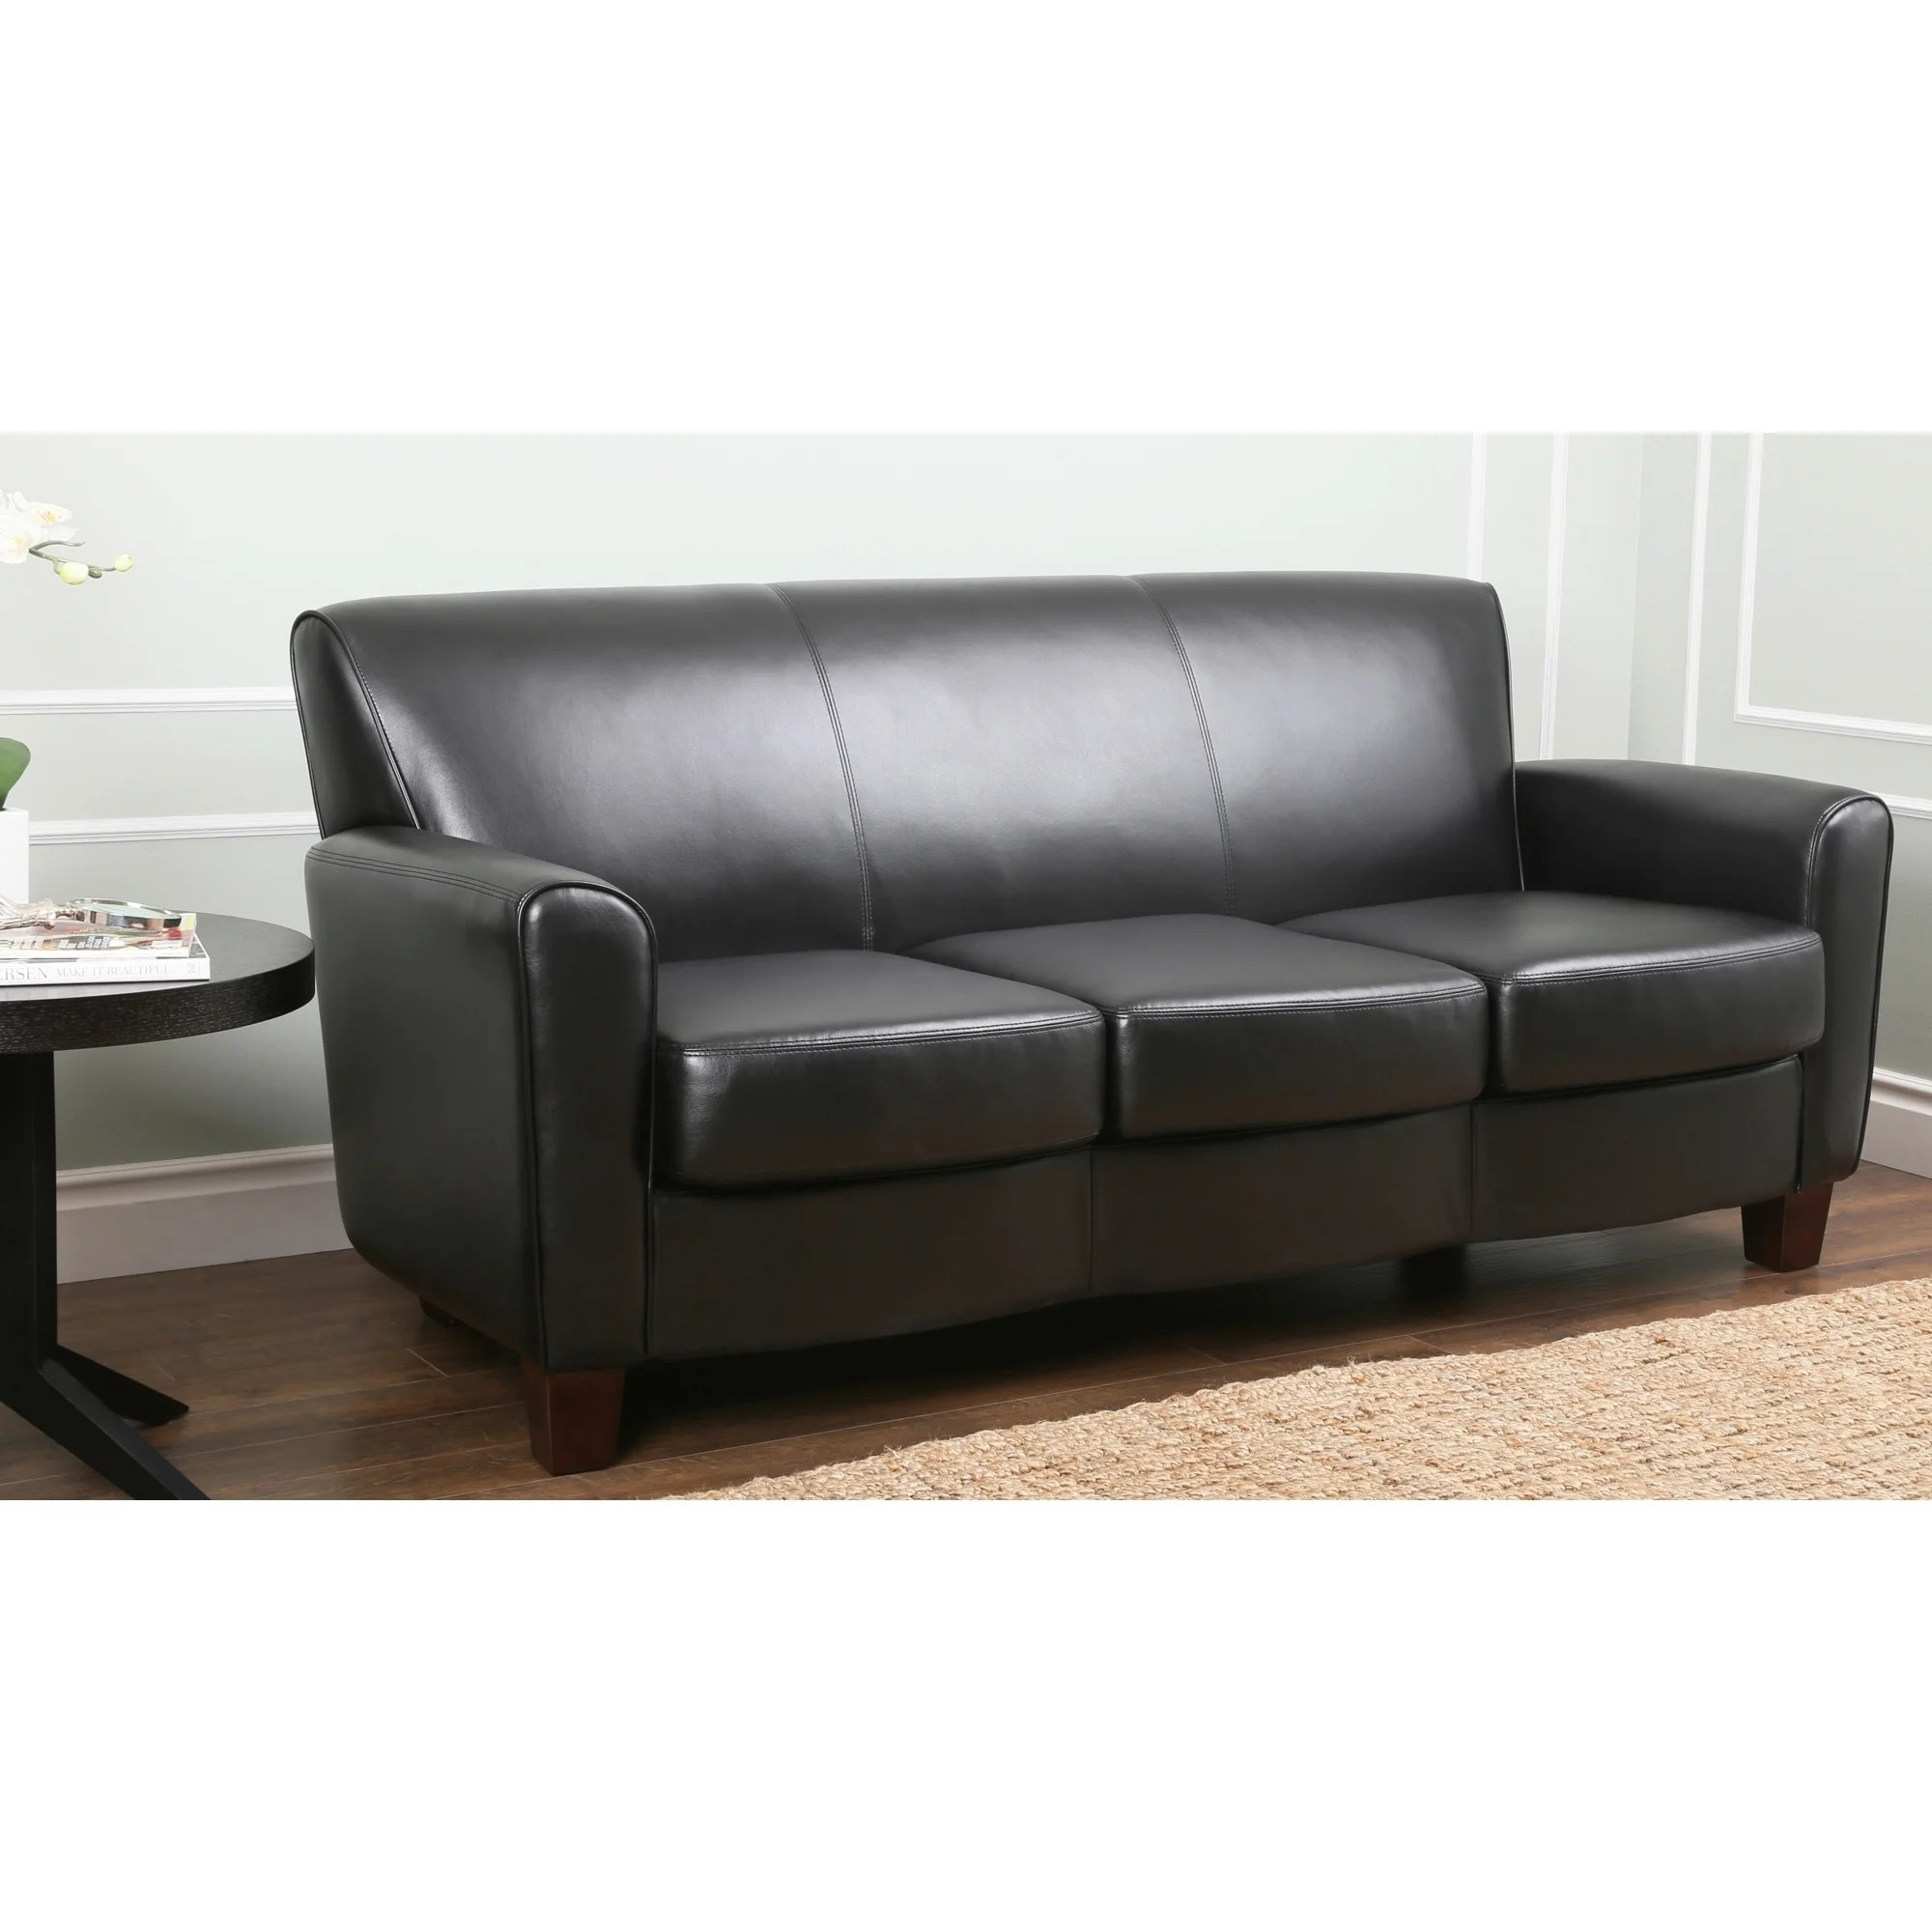 abbyson living westbury leather sectional sofa black best sofas made in usa easton overstock